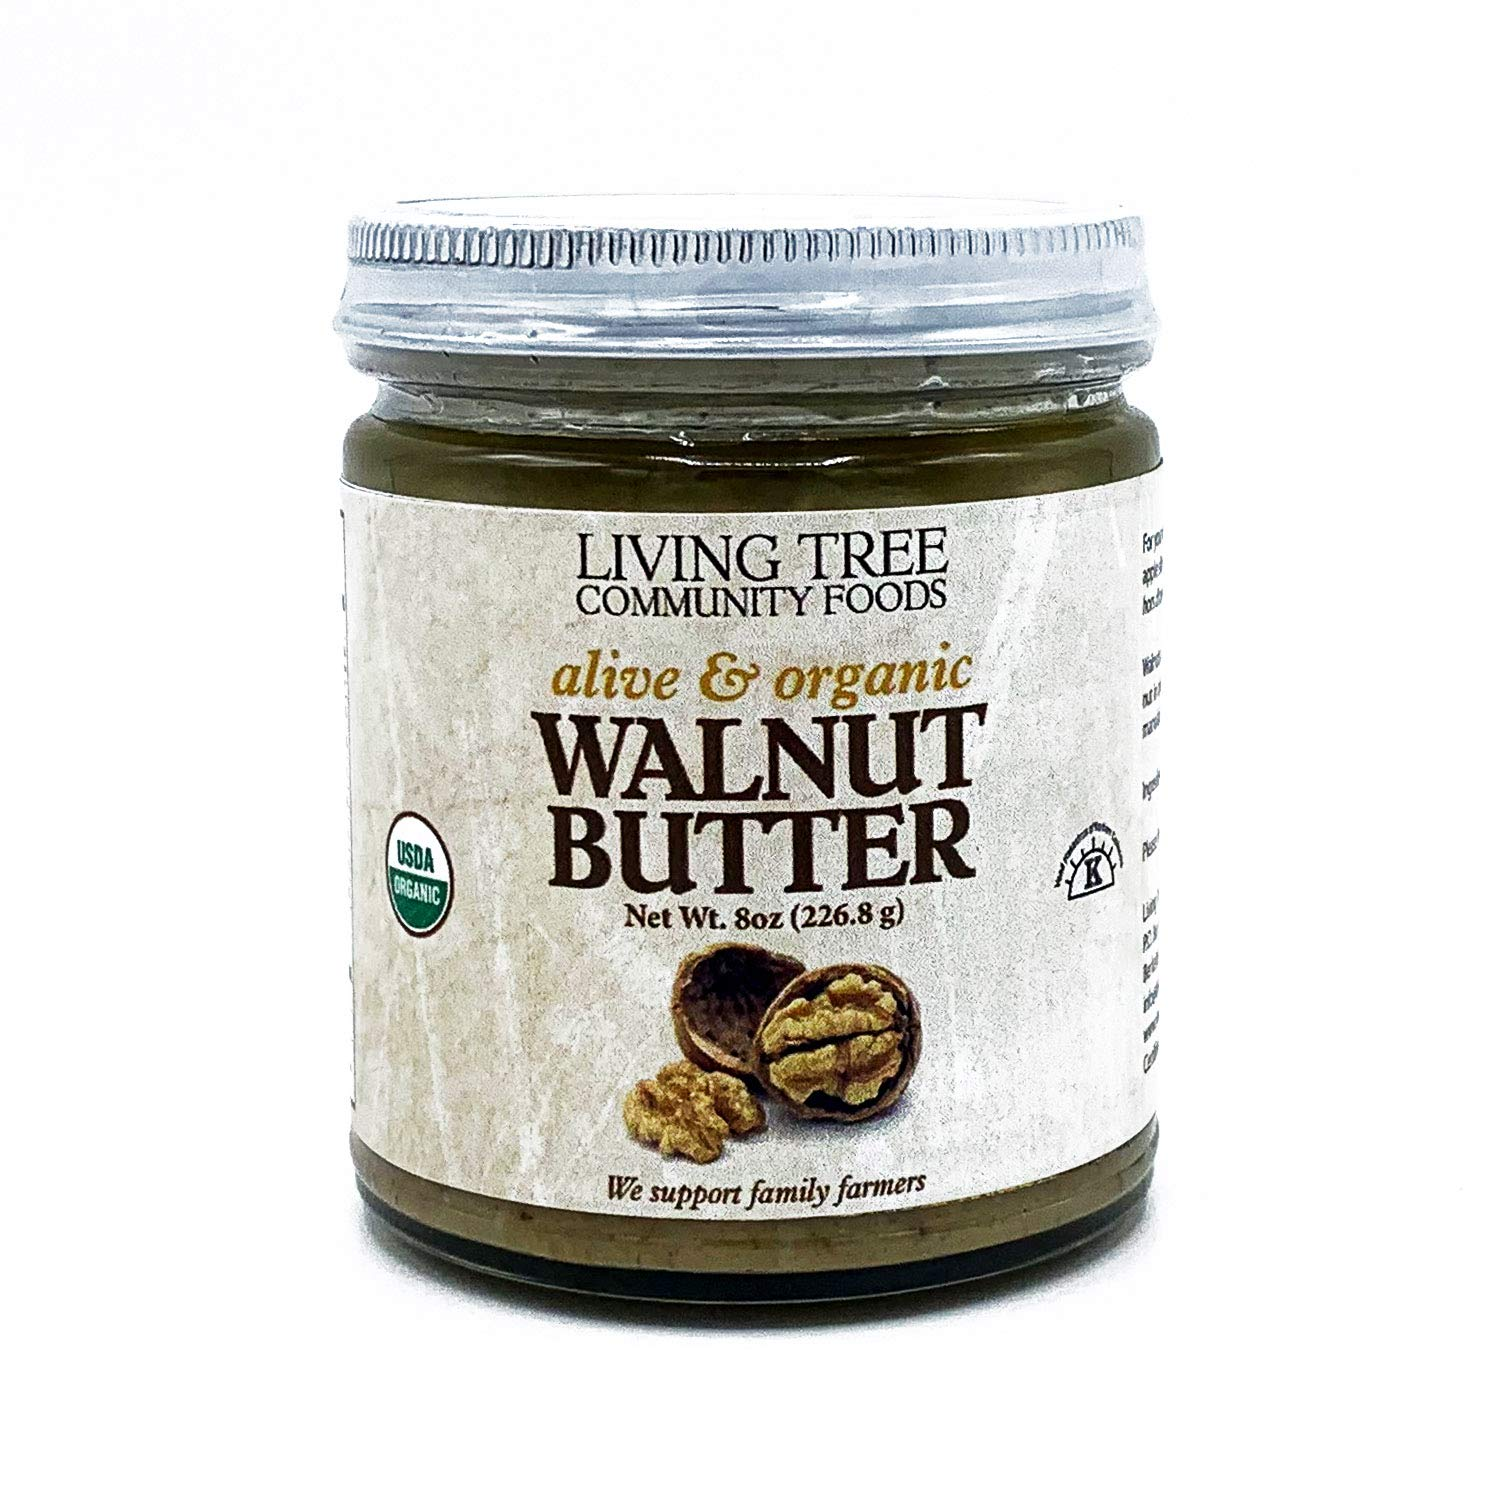 Living Tree Community Foods, Walnut Butter Organic Image